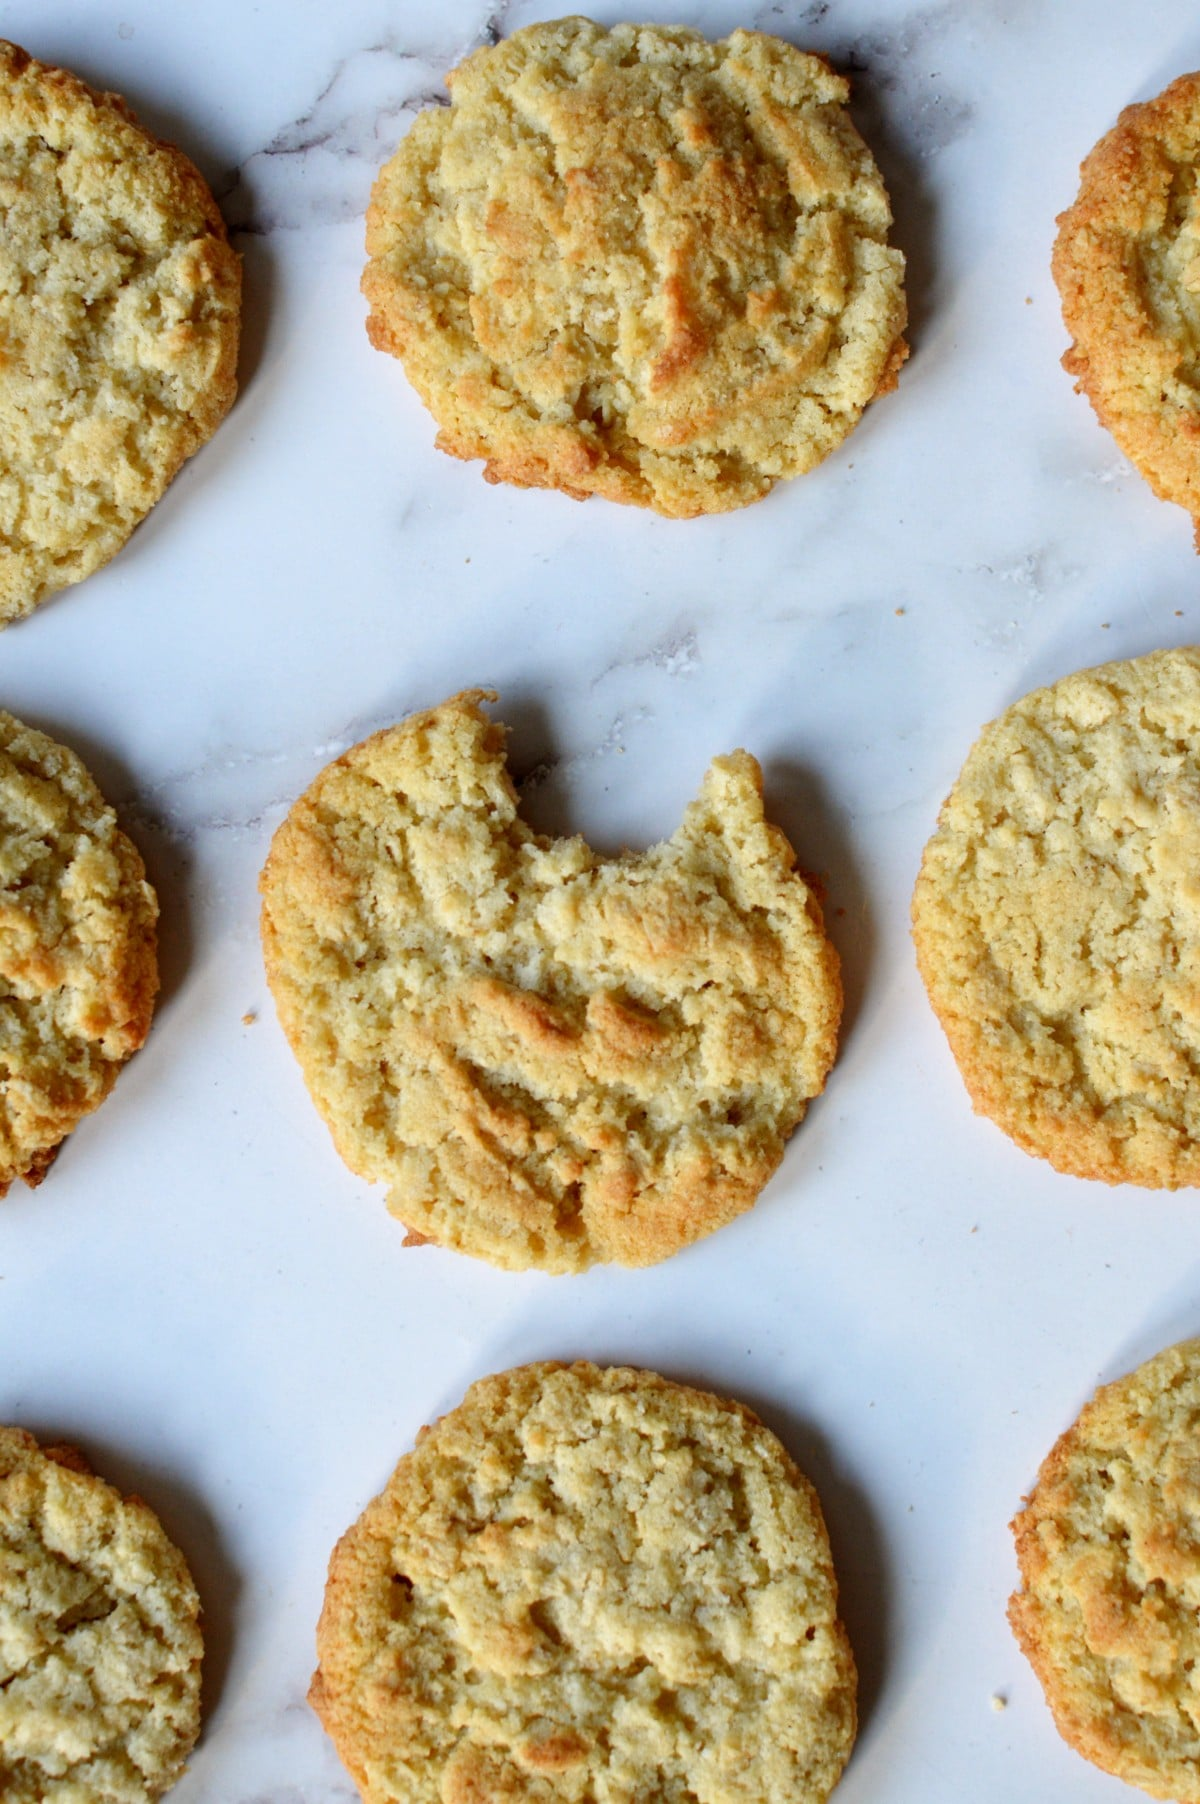 coconut flour cookies on the counter